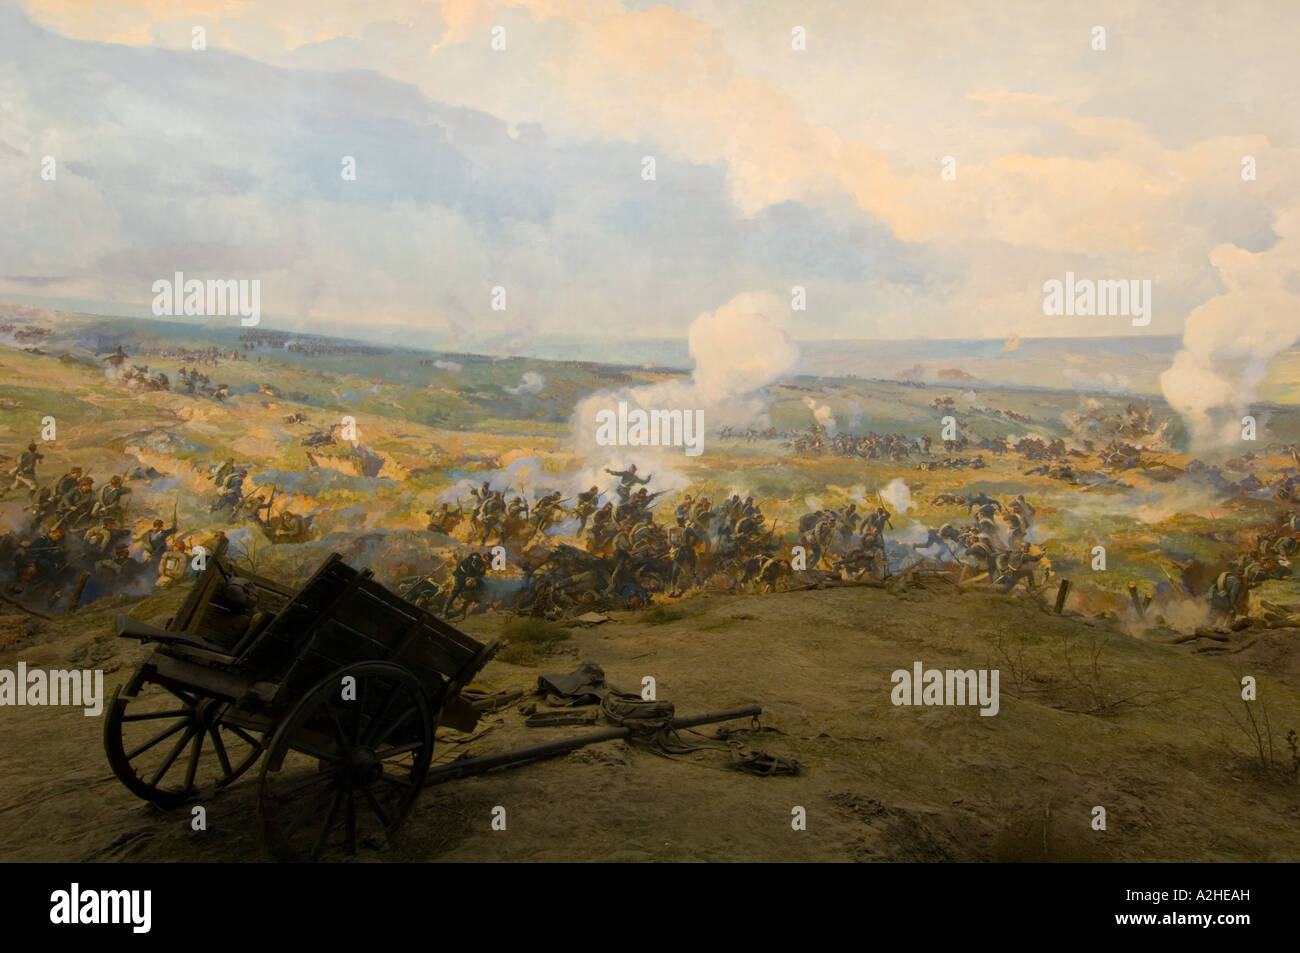 Europe Bulgaria Pleven; one of the paintings at Panorama depicting Turkish defeat by Russians in the Pleven siege - Stock Image